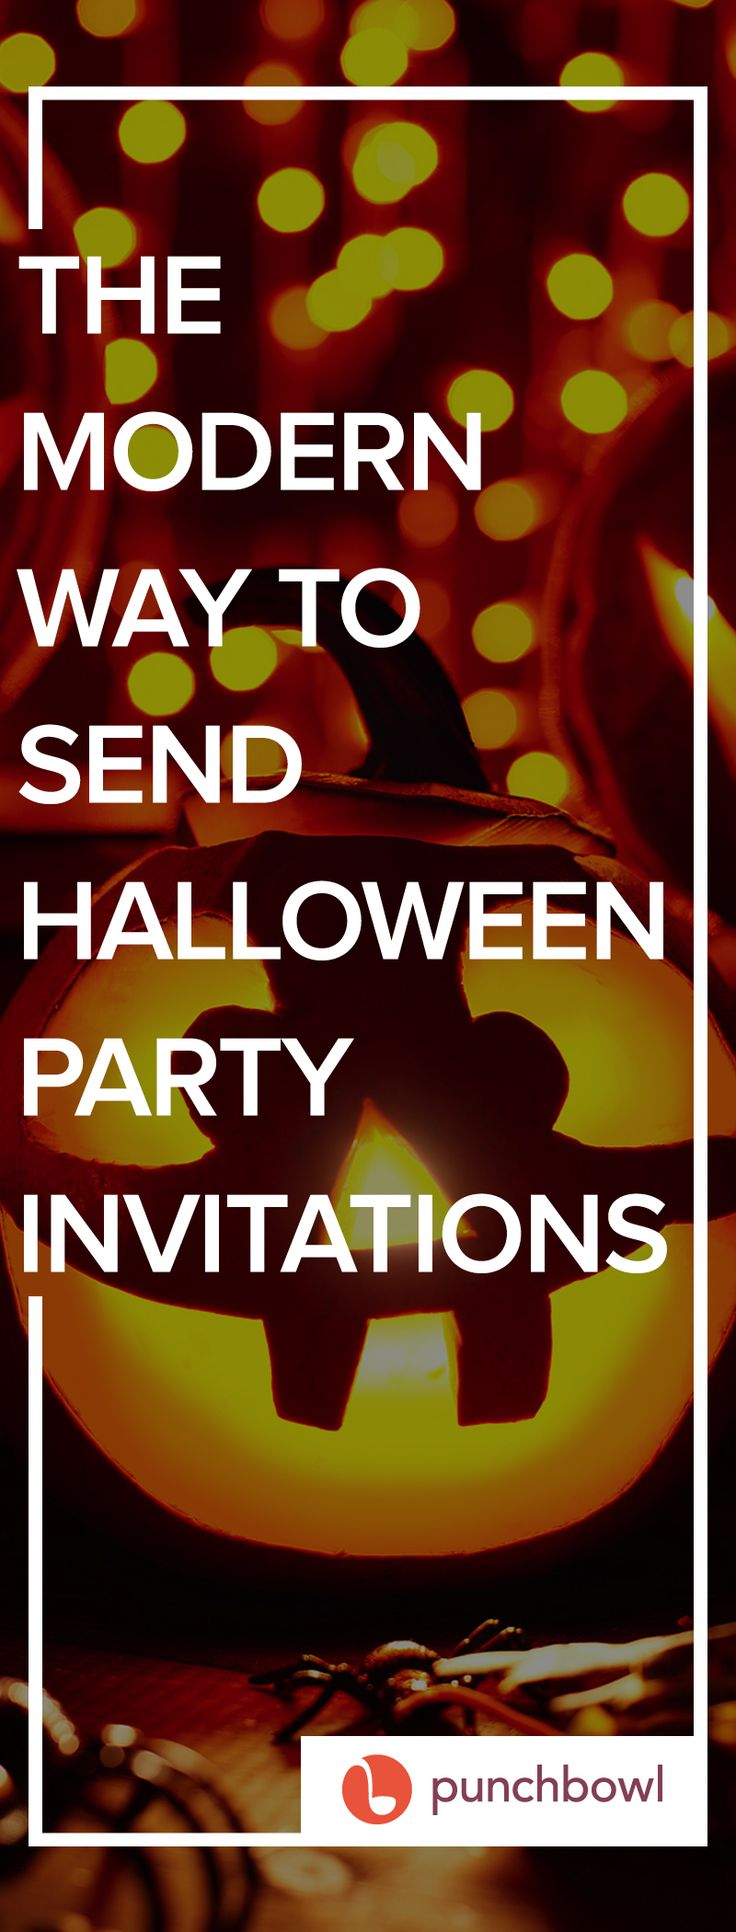 Paper invites are too formal, and emails are too casual. Get it just right with online invitations from Punchbowl. We've got everything you need for your Halloween party.     https://www.punchbowl.com/online-invitations/category/23?utm_source=Pinterest&utm_medium=51.4P